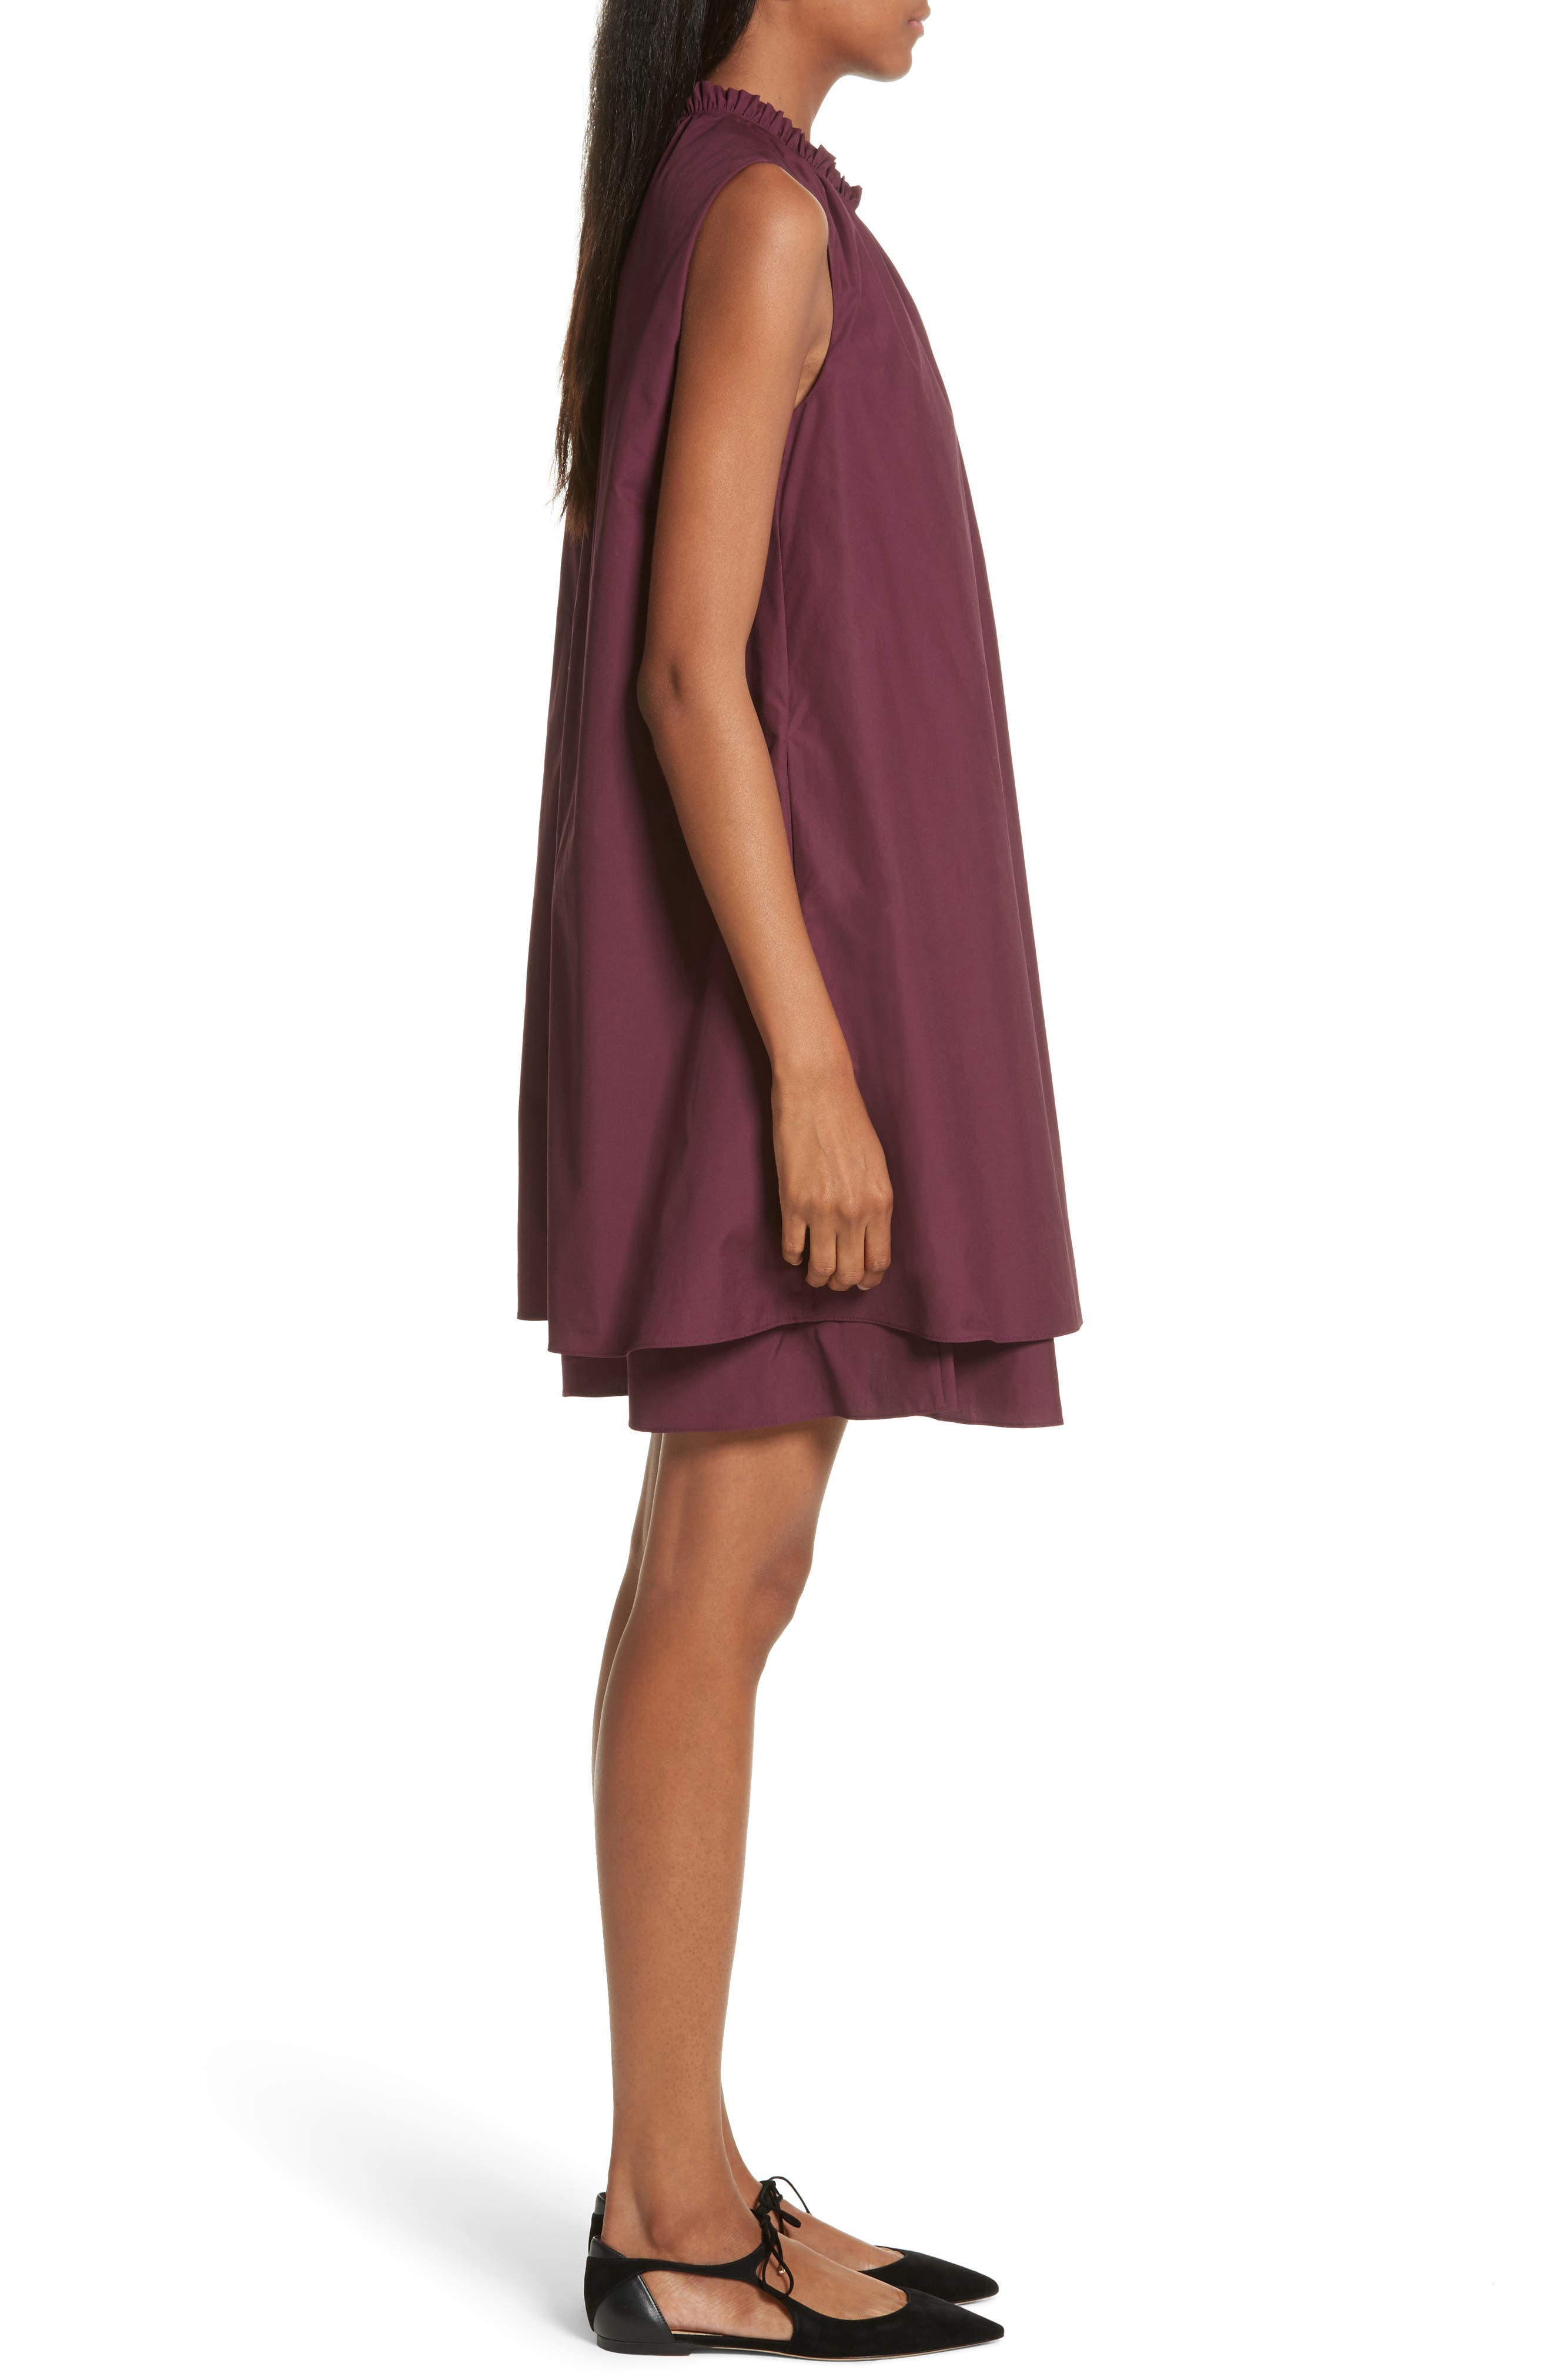 Ezmay Tiered Shift Dress,                             Alternate thumbnail 3, color,                             930